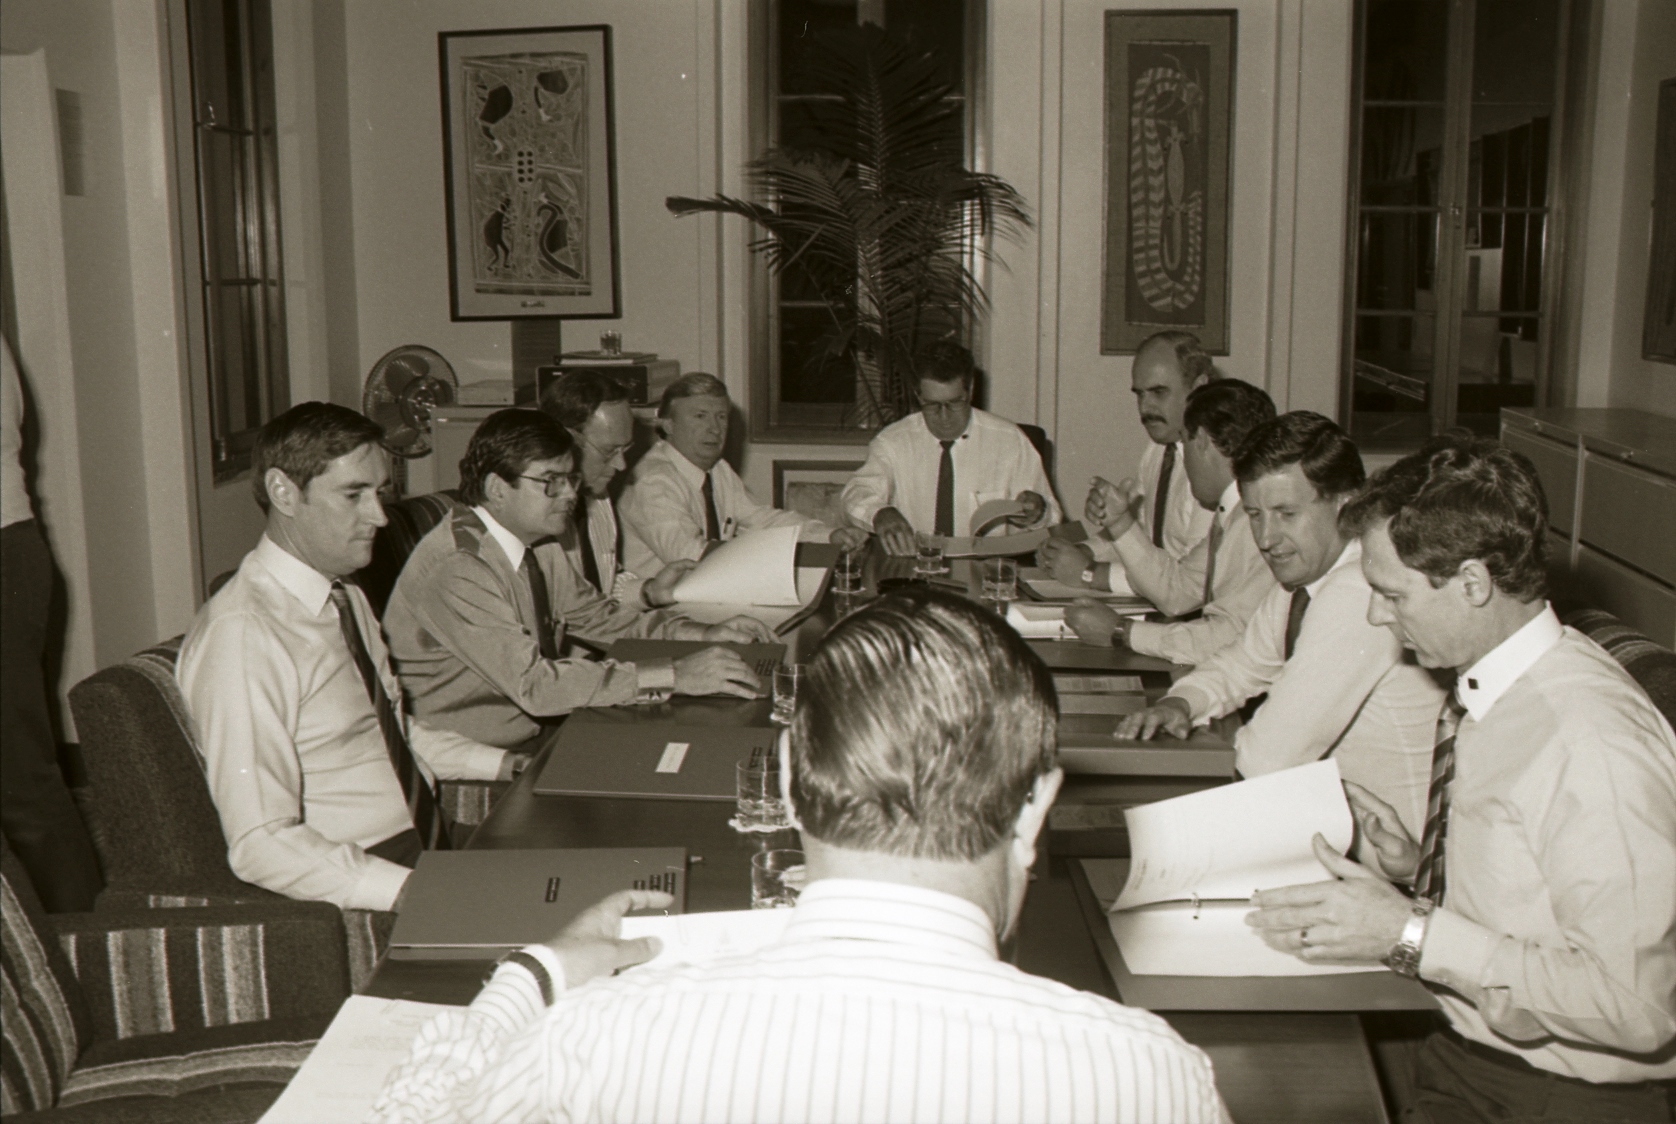 [New Executive Council meeting, 14 July 1988] Image courtesy of Northern Territory Archives Service, Department of the Chief Minister, NTRS 3823 P1, BW 2735, Item 7